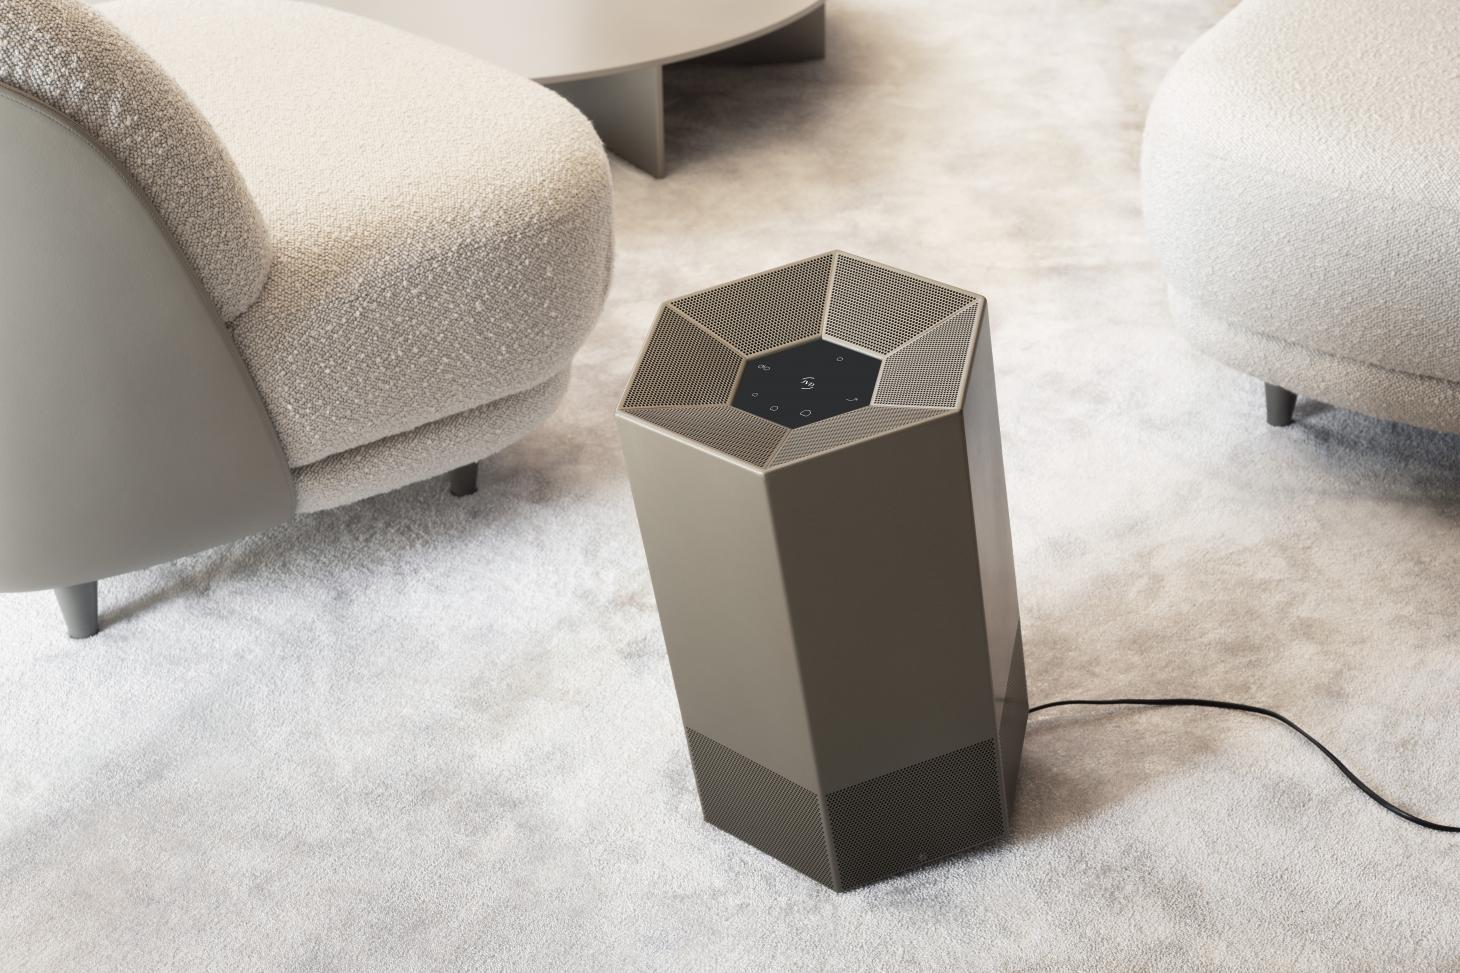 The Shield purifier from Air Origins, manufactured by French company JVD